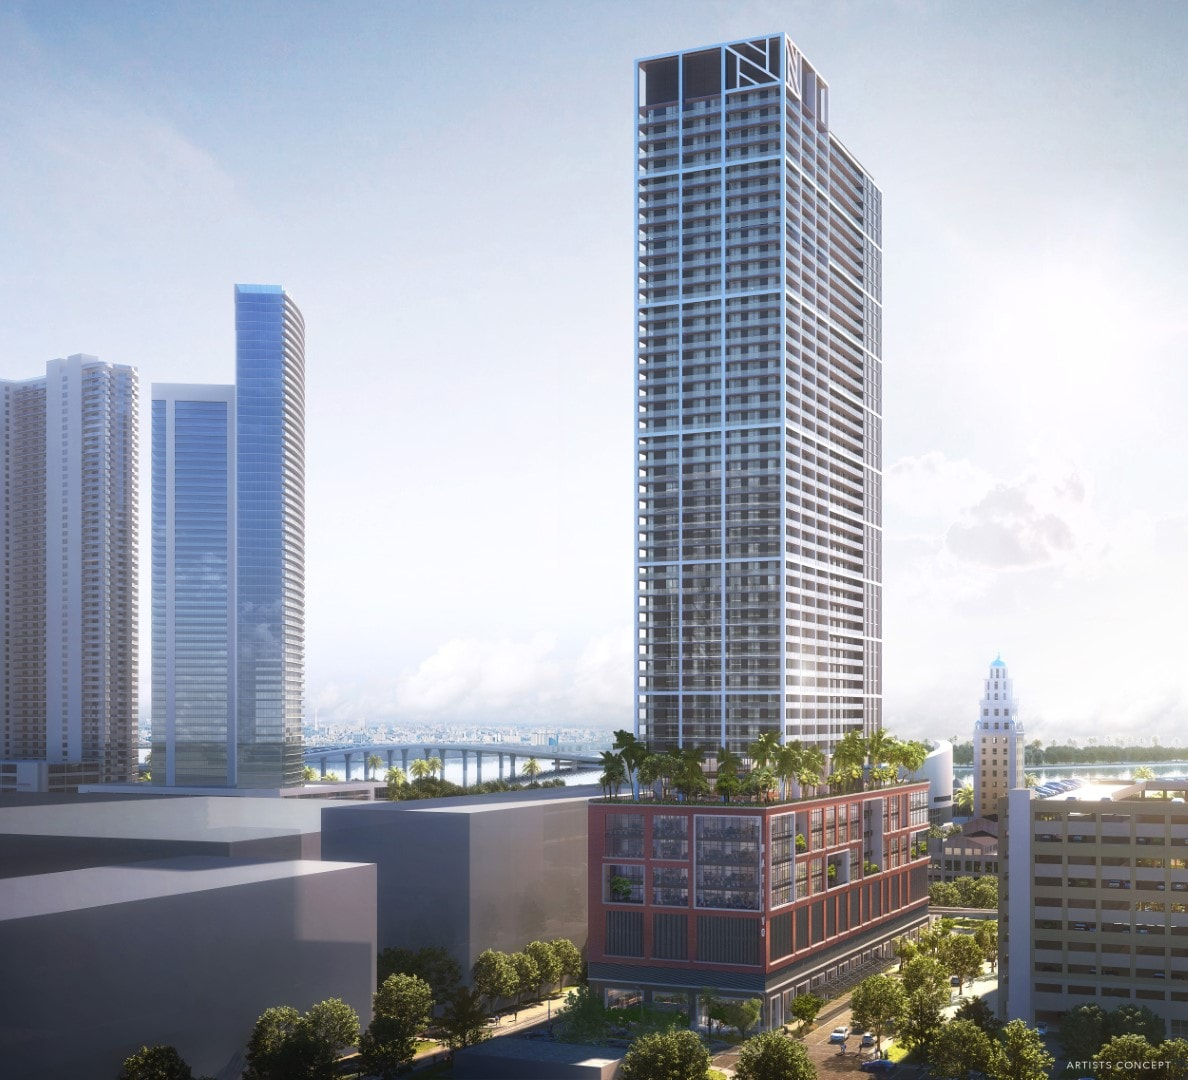 The Arquitectonica-Designed Short Term Rental Project Natiivo In Downtown Miami Reveals New Renderings